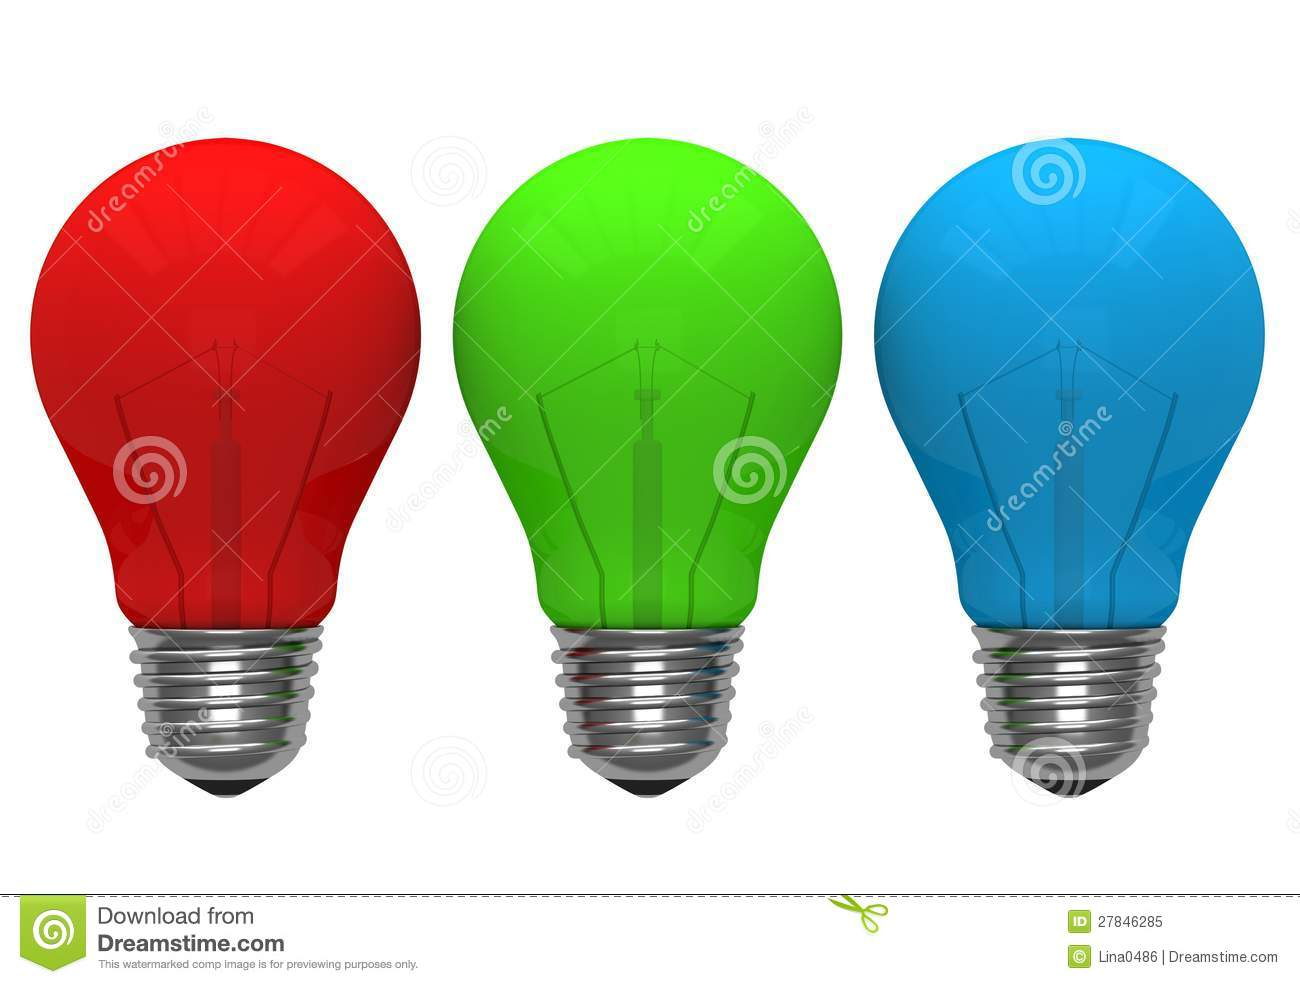 Red green blue color light bulb royalty free stock photo for Light green blue color